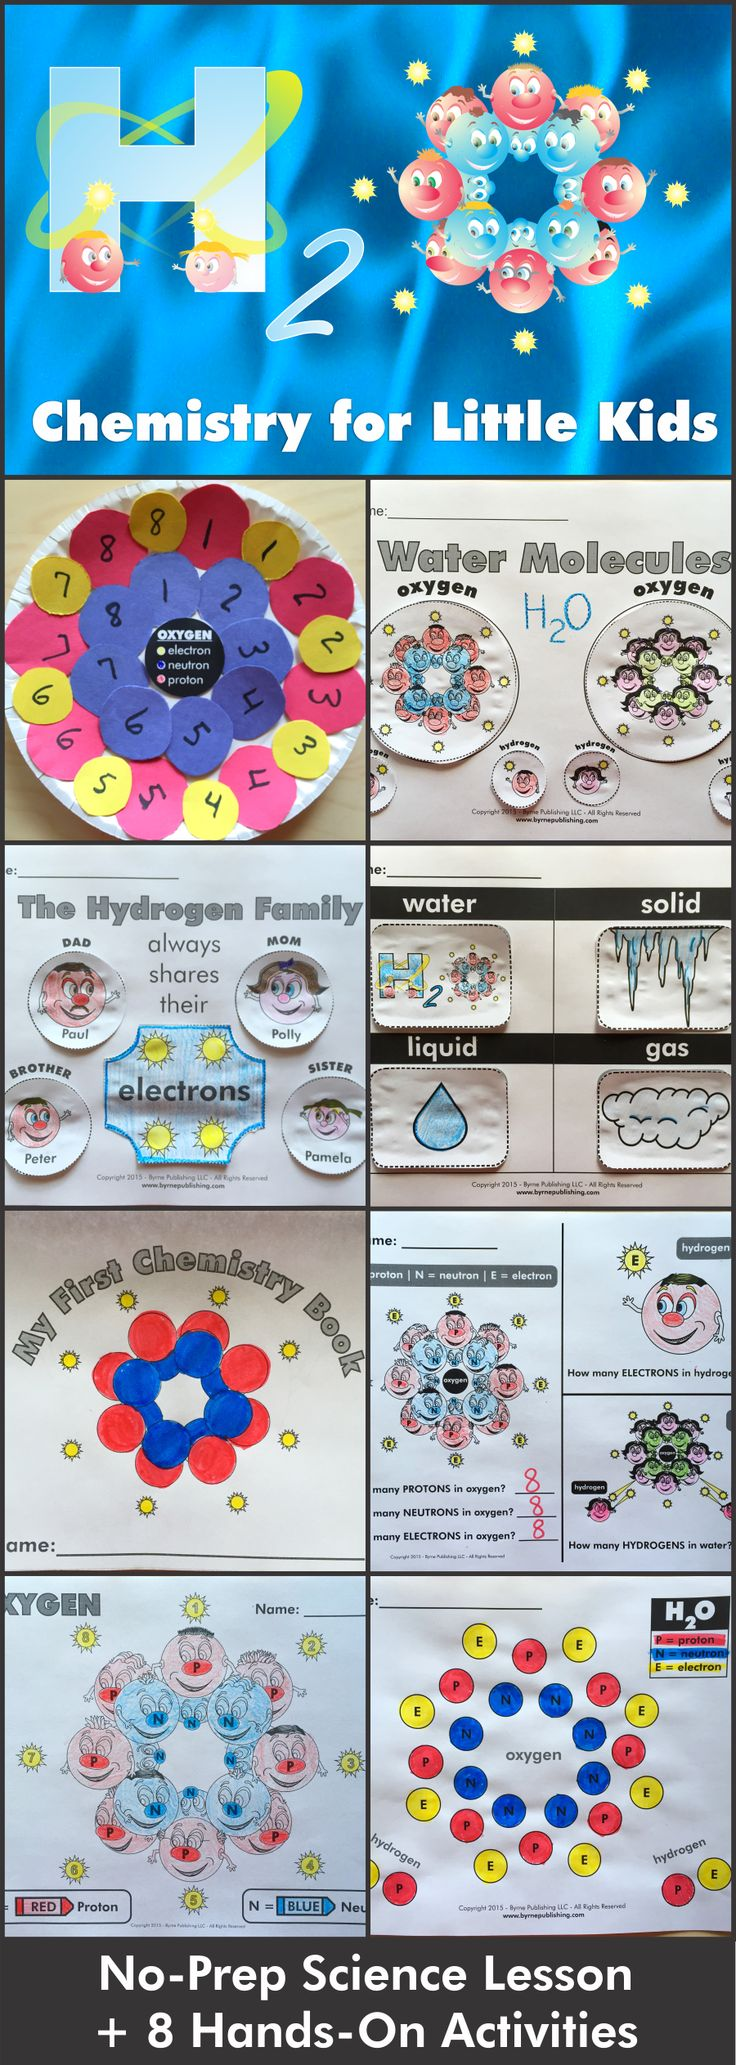 Best 25 proton neutron electron ideas on pinterest workout sharing is scientific chemistry for kidsproton neutron electronscience gamestrikefo Gallery